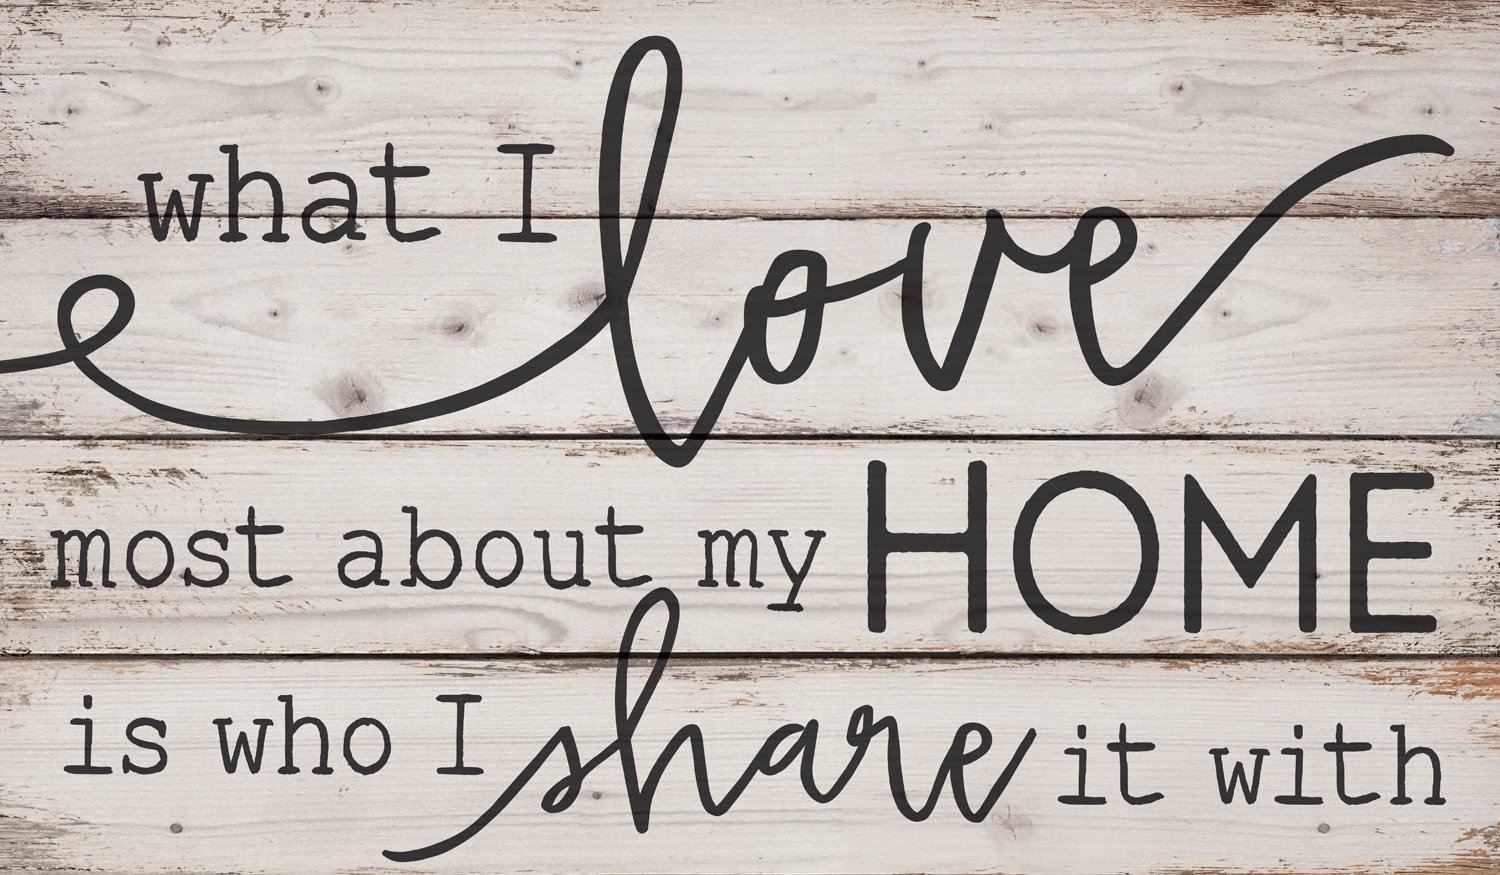 CDM product P. Graham Dunn What I Love Most About My Home White Wash 24 x 14 Inch Solid Pine Wood Pallet Wall Plaque Sign big image